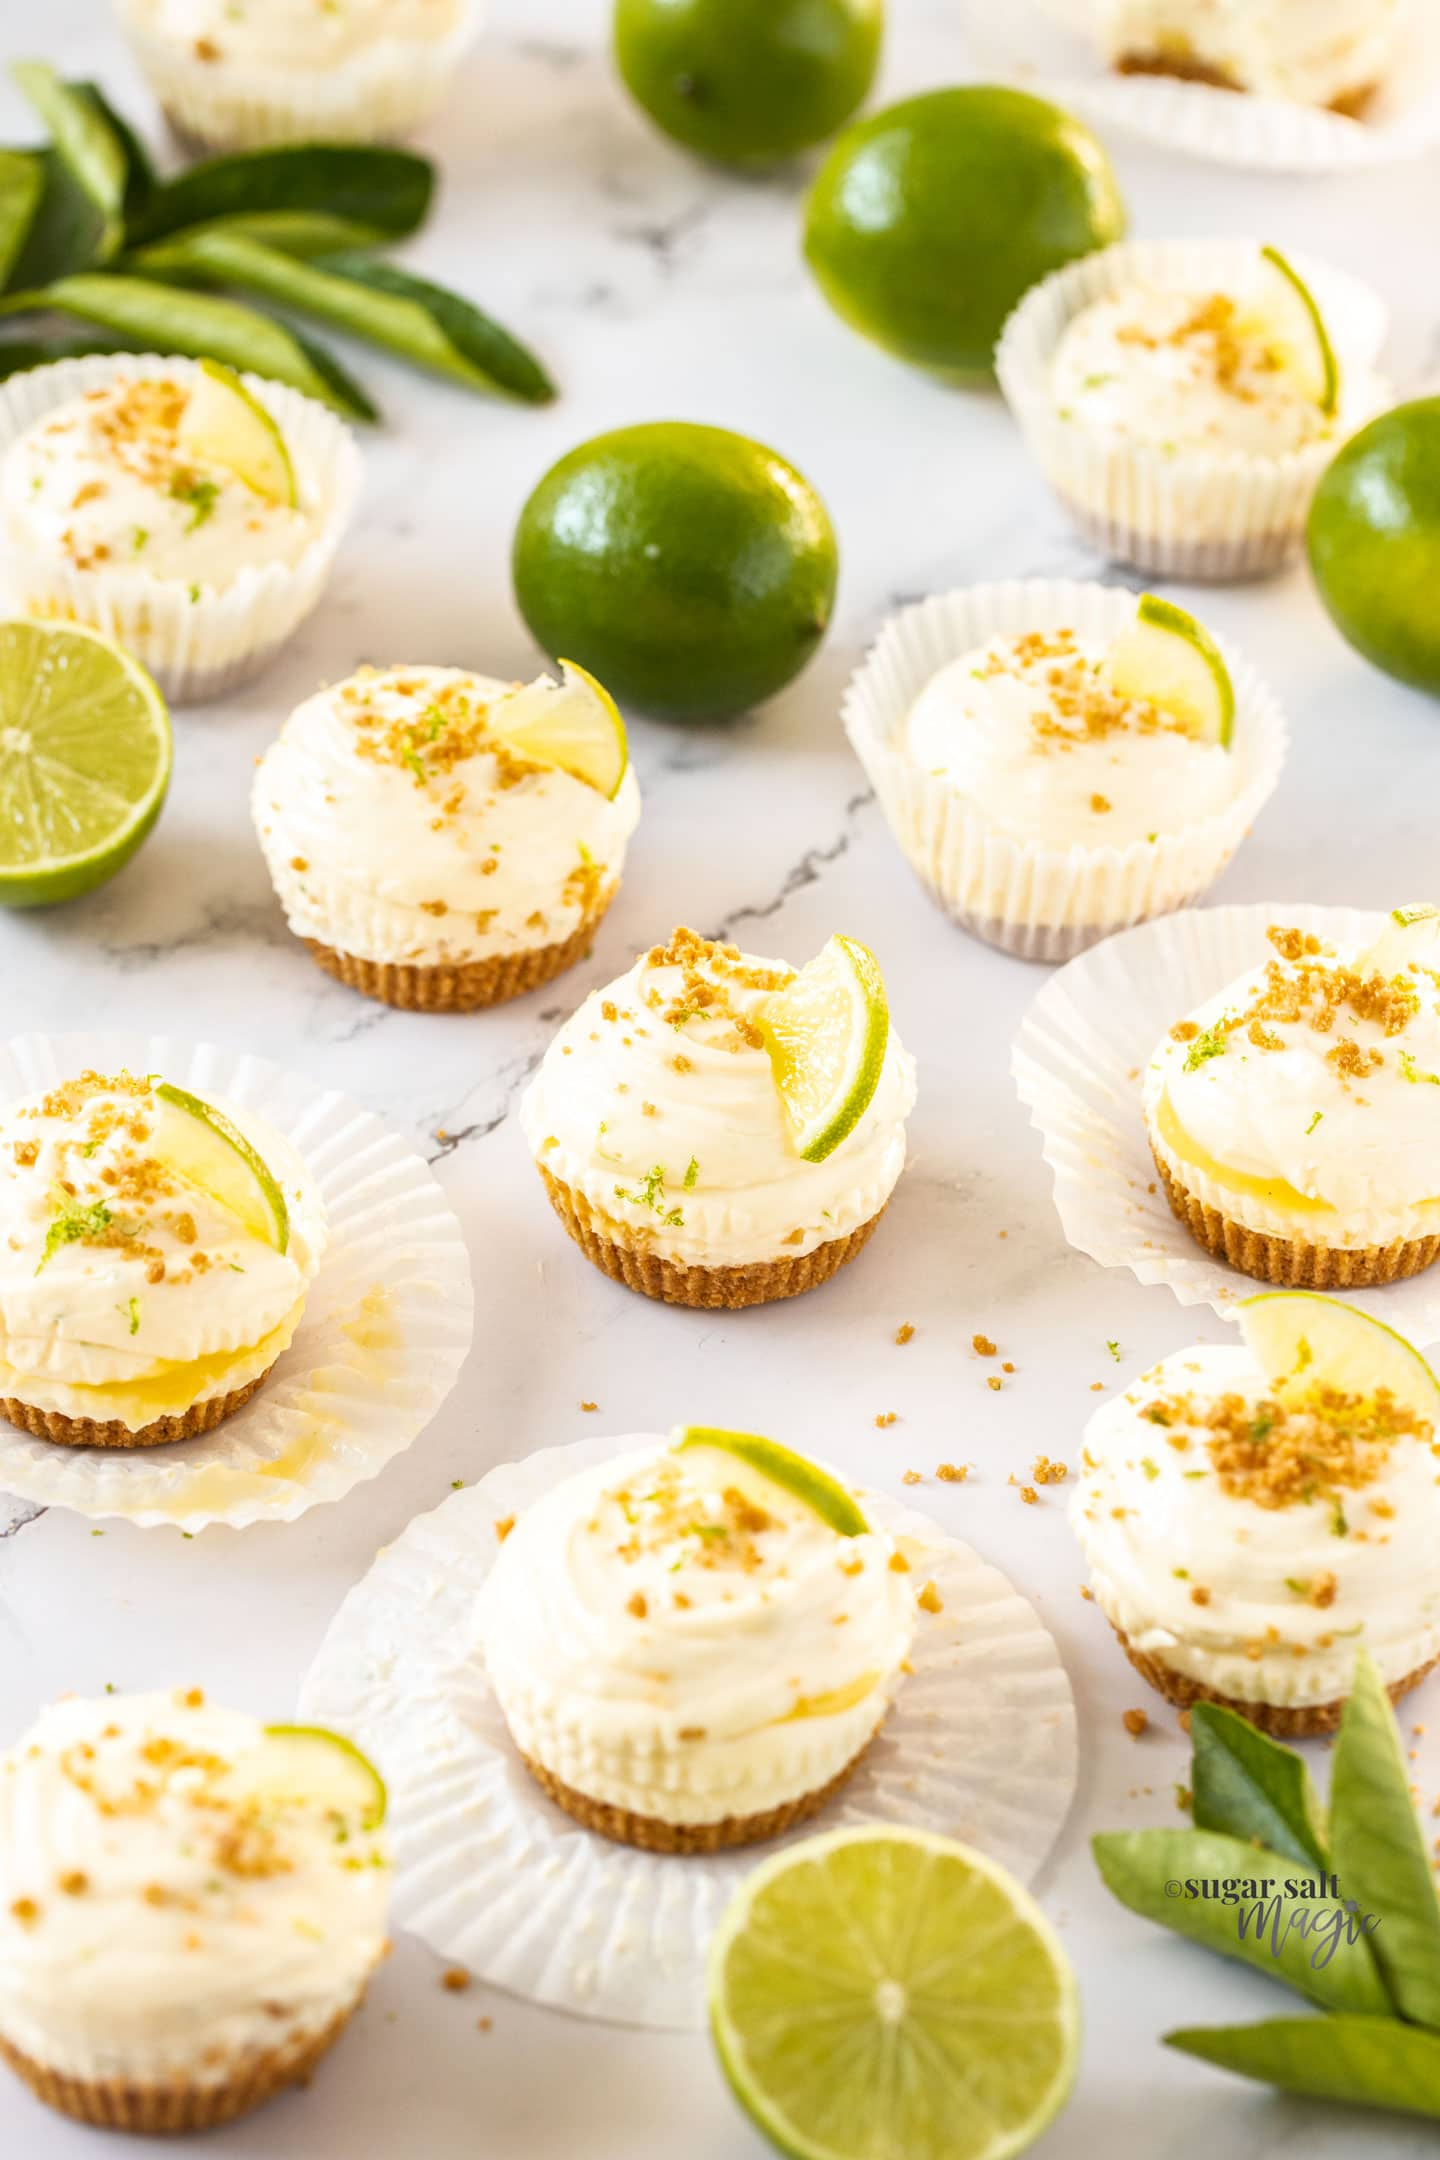 A batch of mini cheesecakes surrounded by limes and cookie crumbs